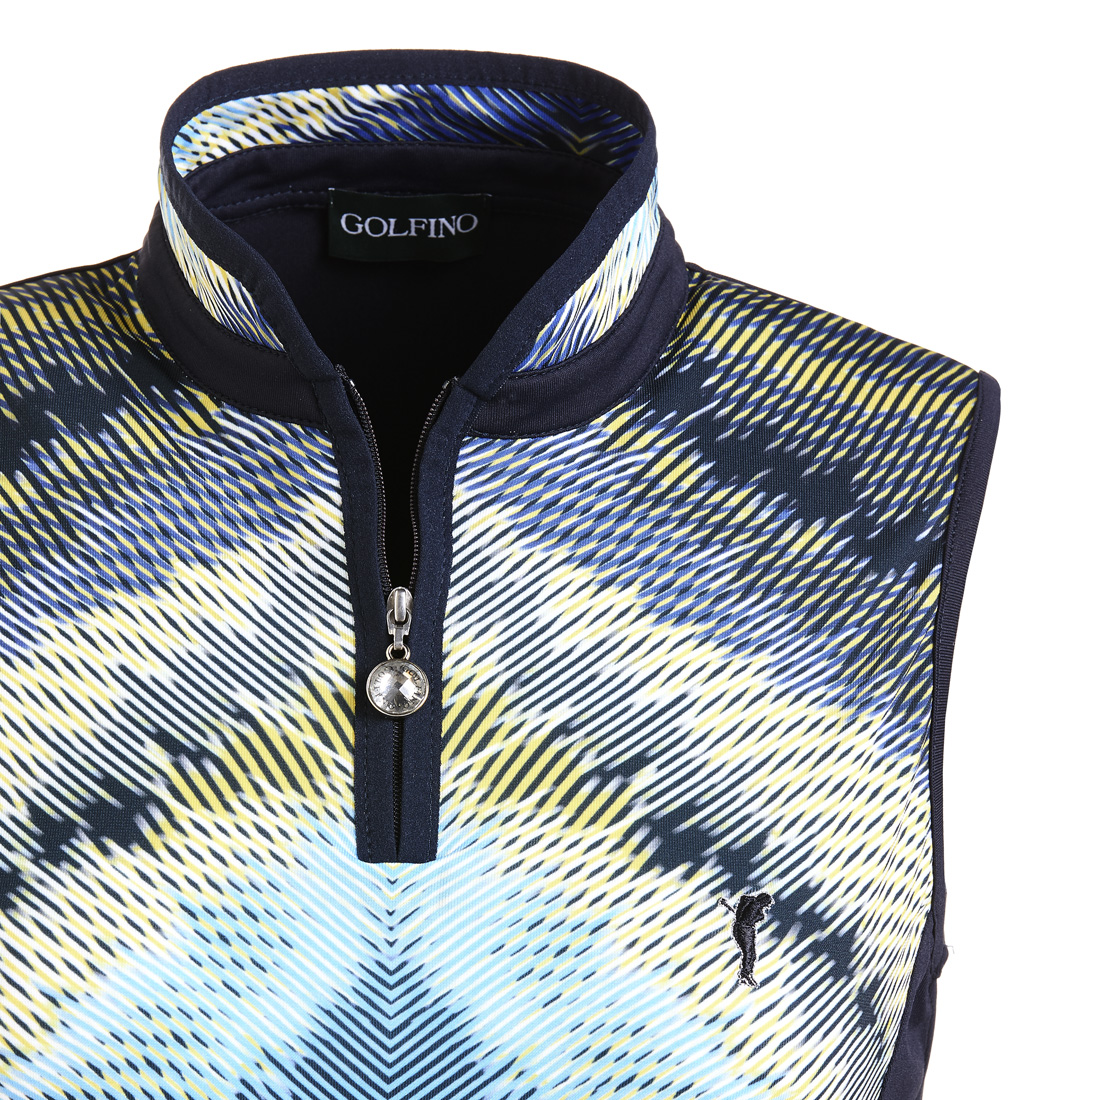 Ärmelloses Funktions-Golfpolo mit Moisture Management in Slim Fit